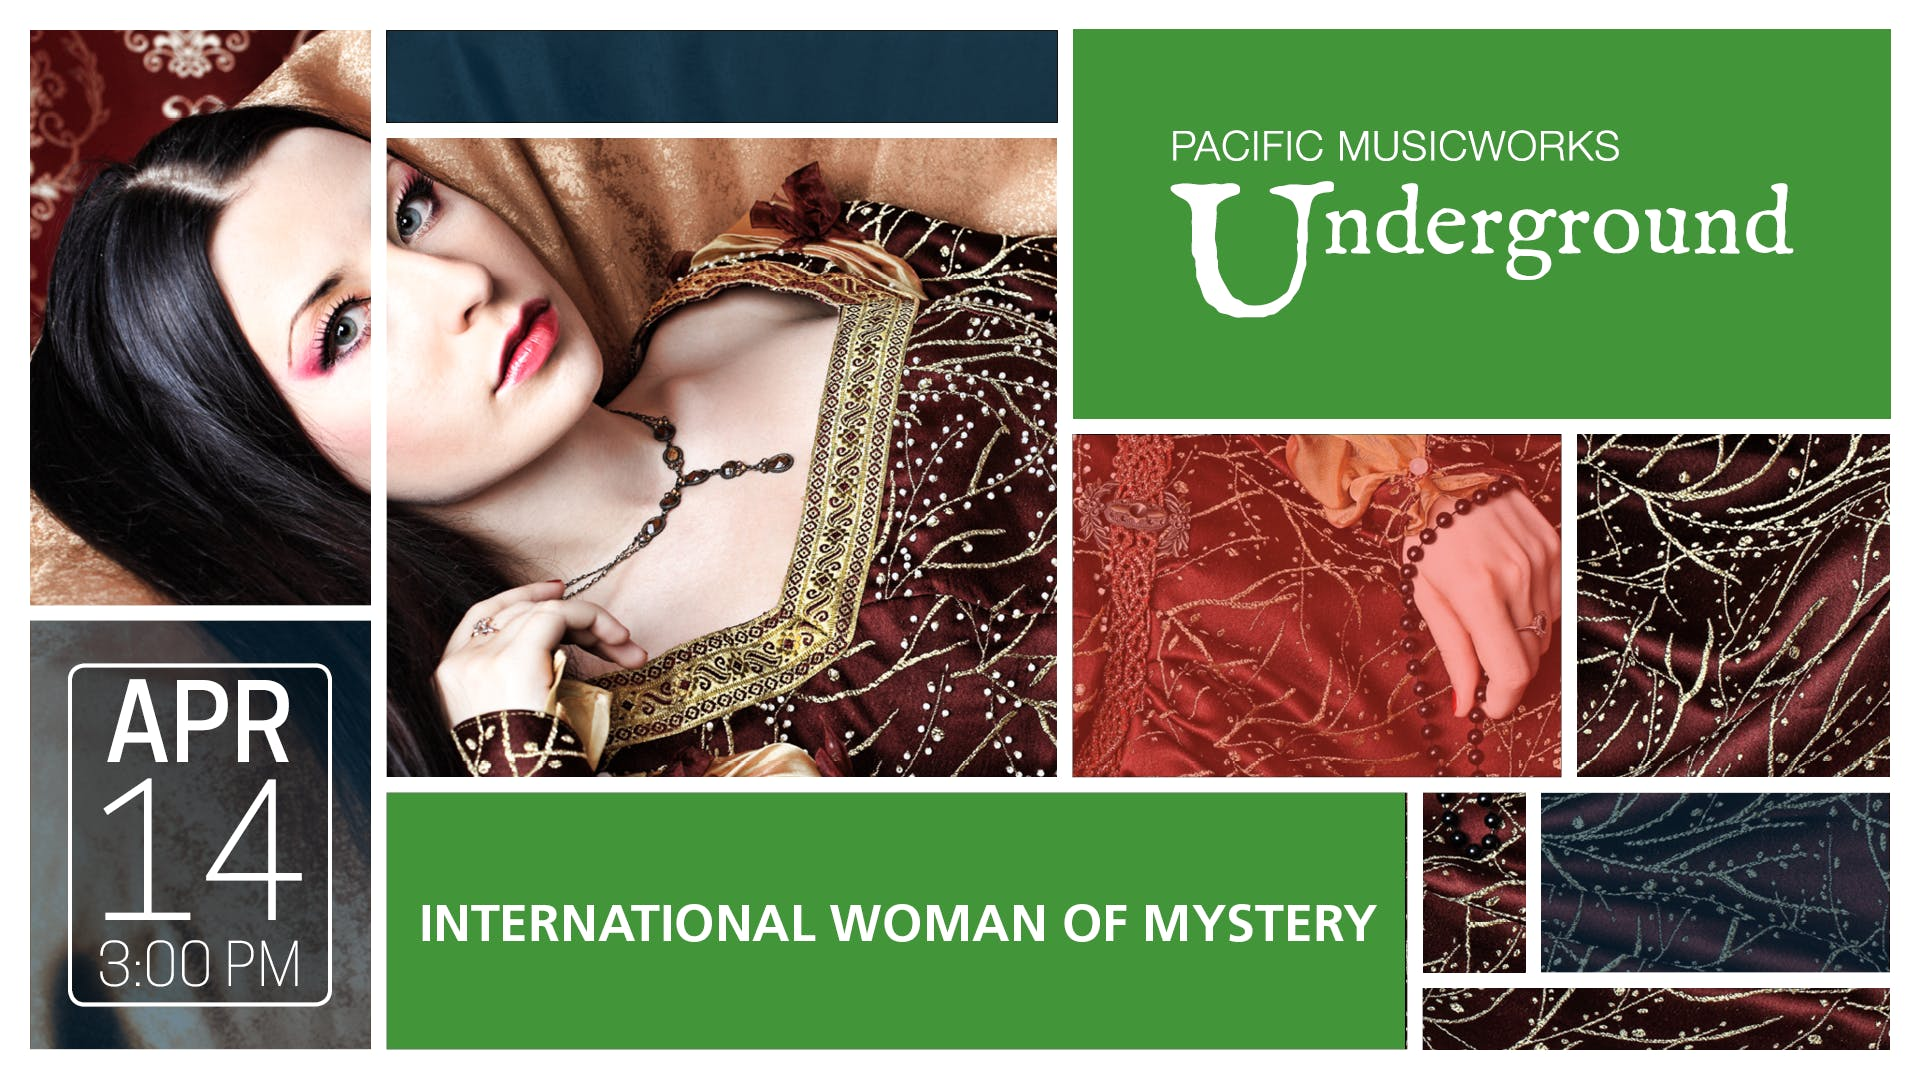 INTERNATIONAL WOMAN OF MYSTERY